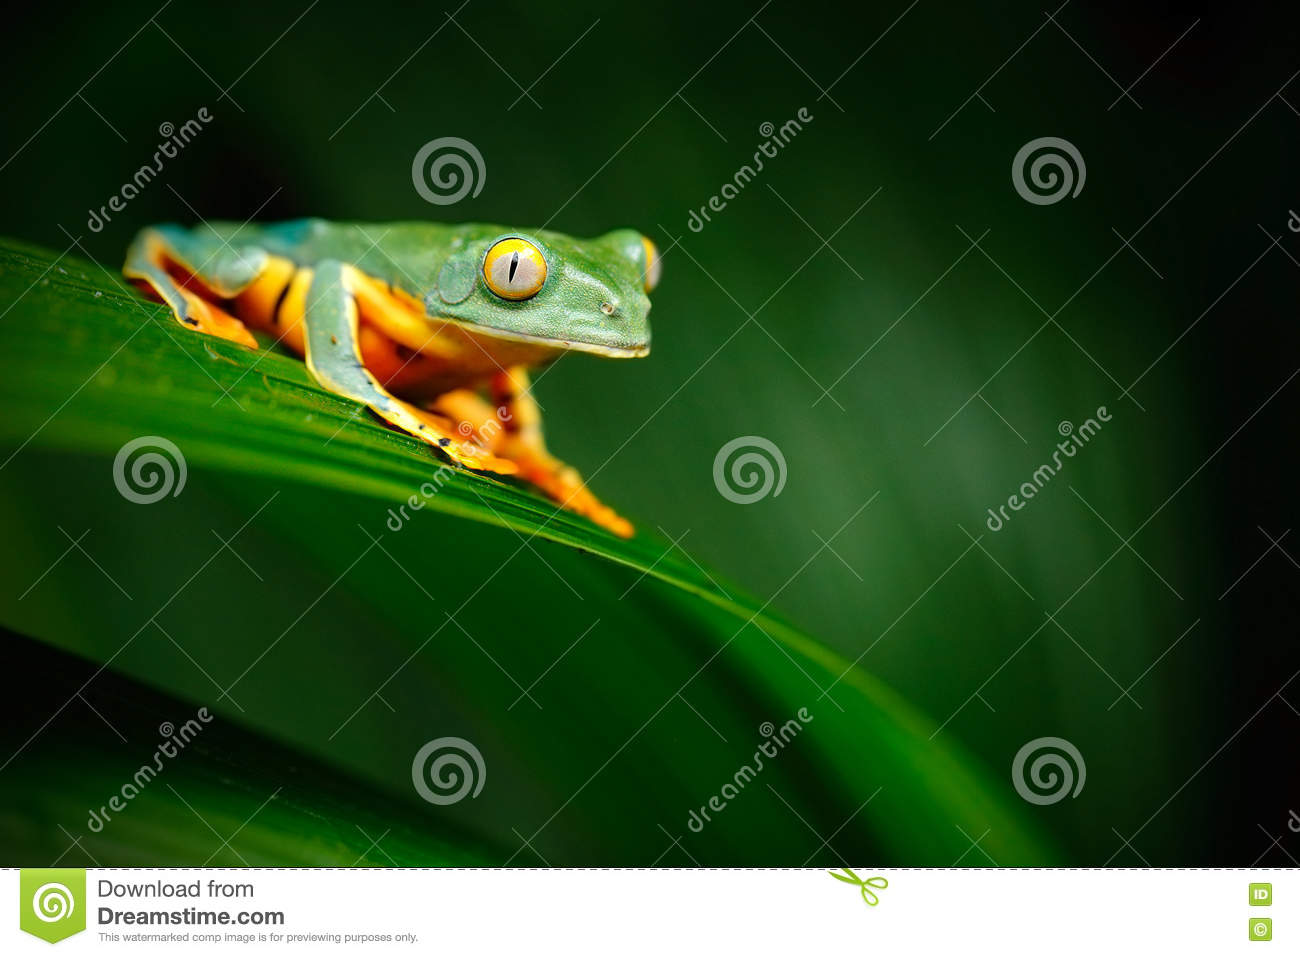 Golden-eyed leaf frog, Cruziohyla calcarifer, green frog sitting on the leaves, tree frog in the nature habitat, Corcovado, Costa